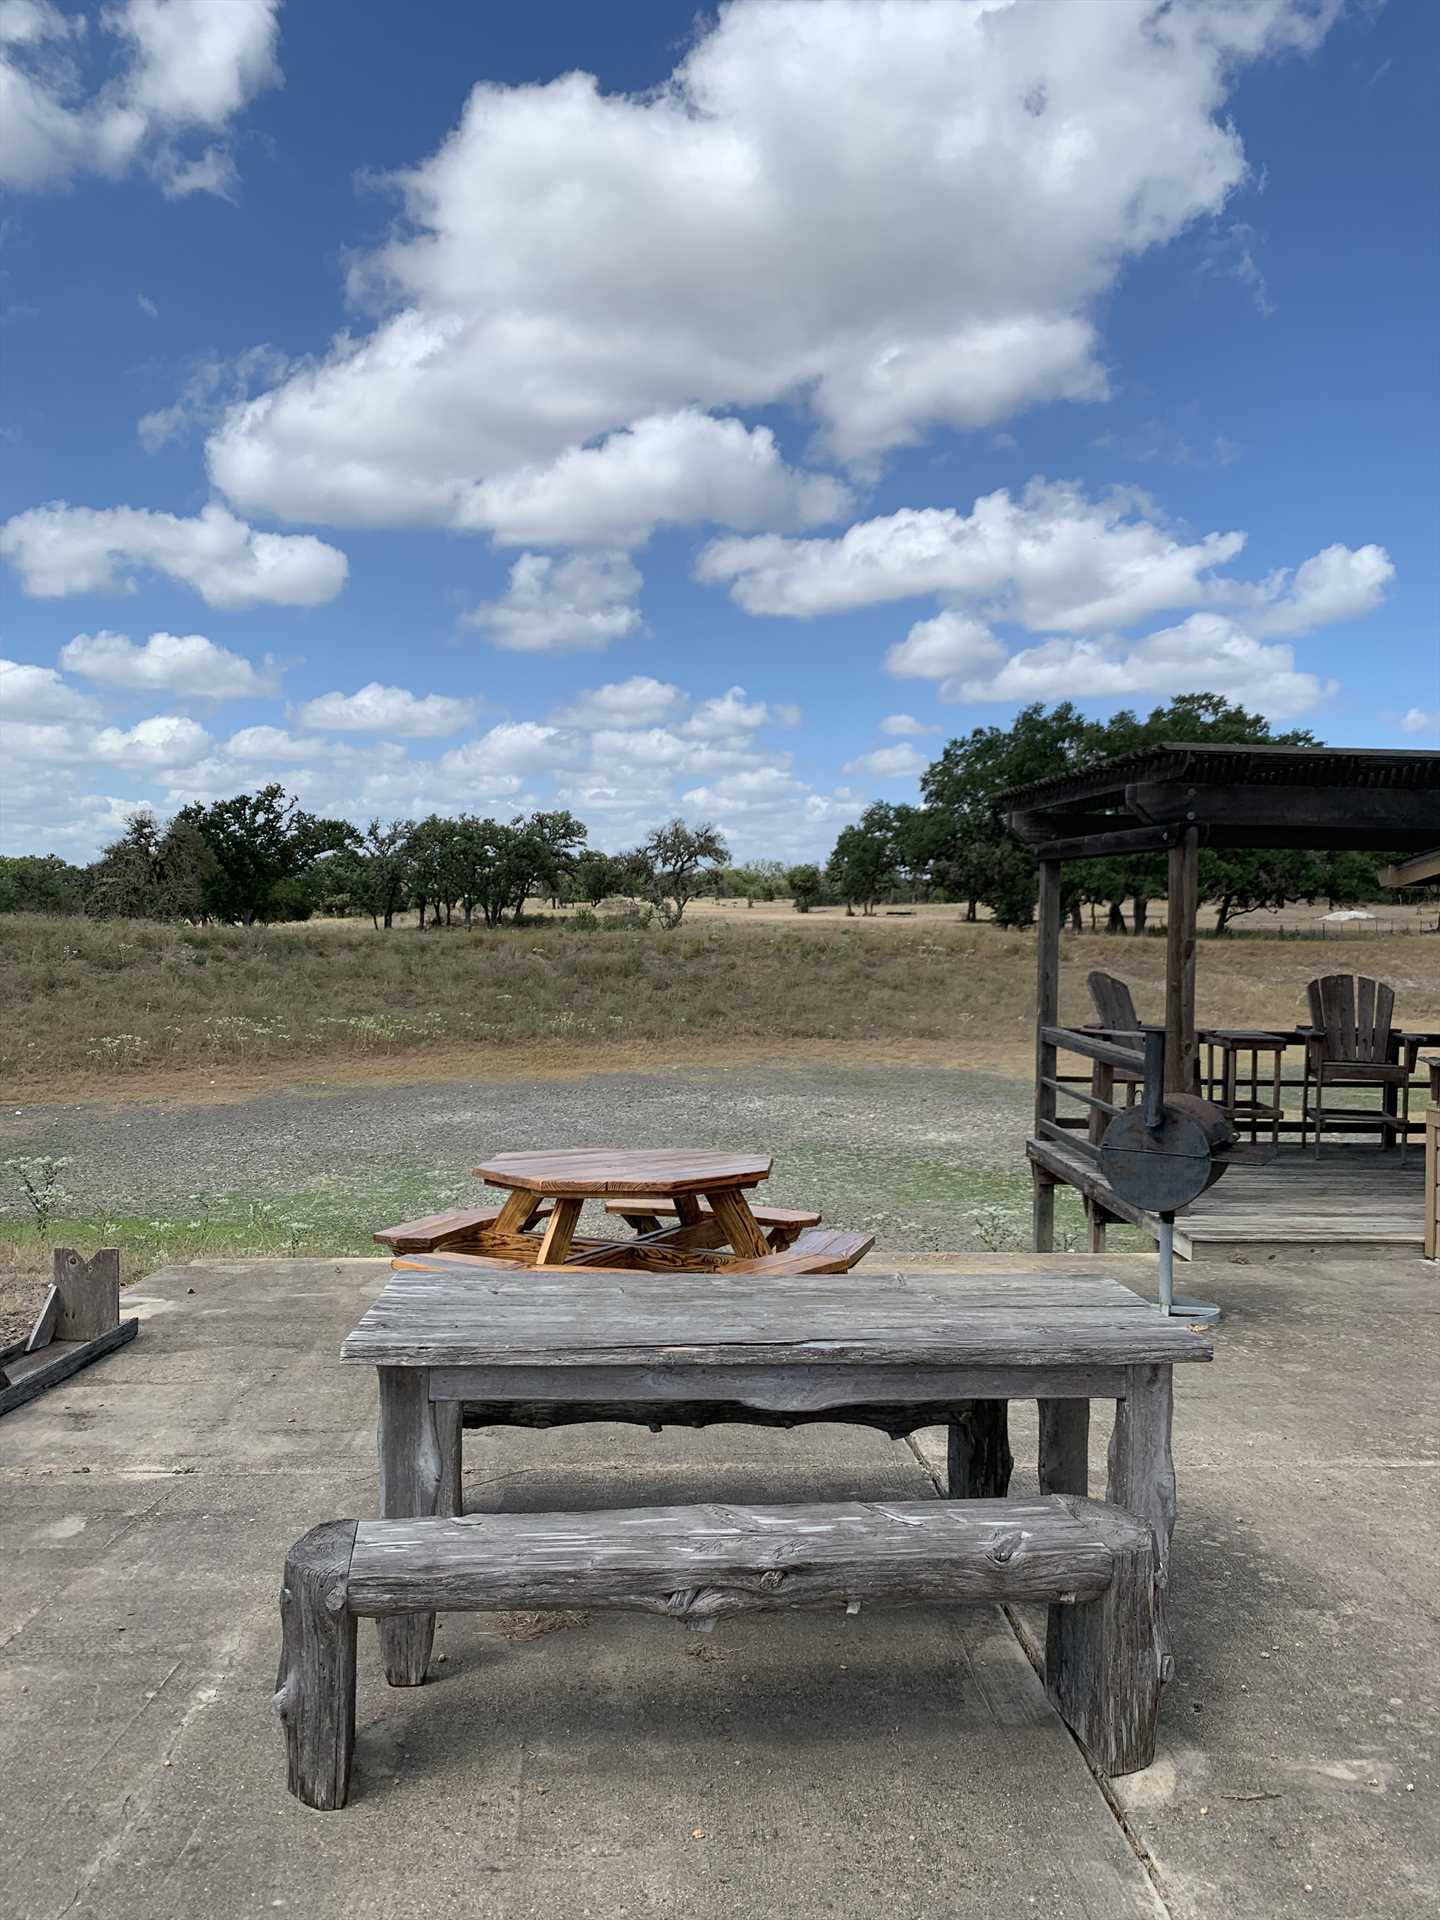 Dig in for a genuine Texas BBQ feed at the pavilion! It has plenty of open-air dining space.